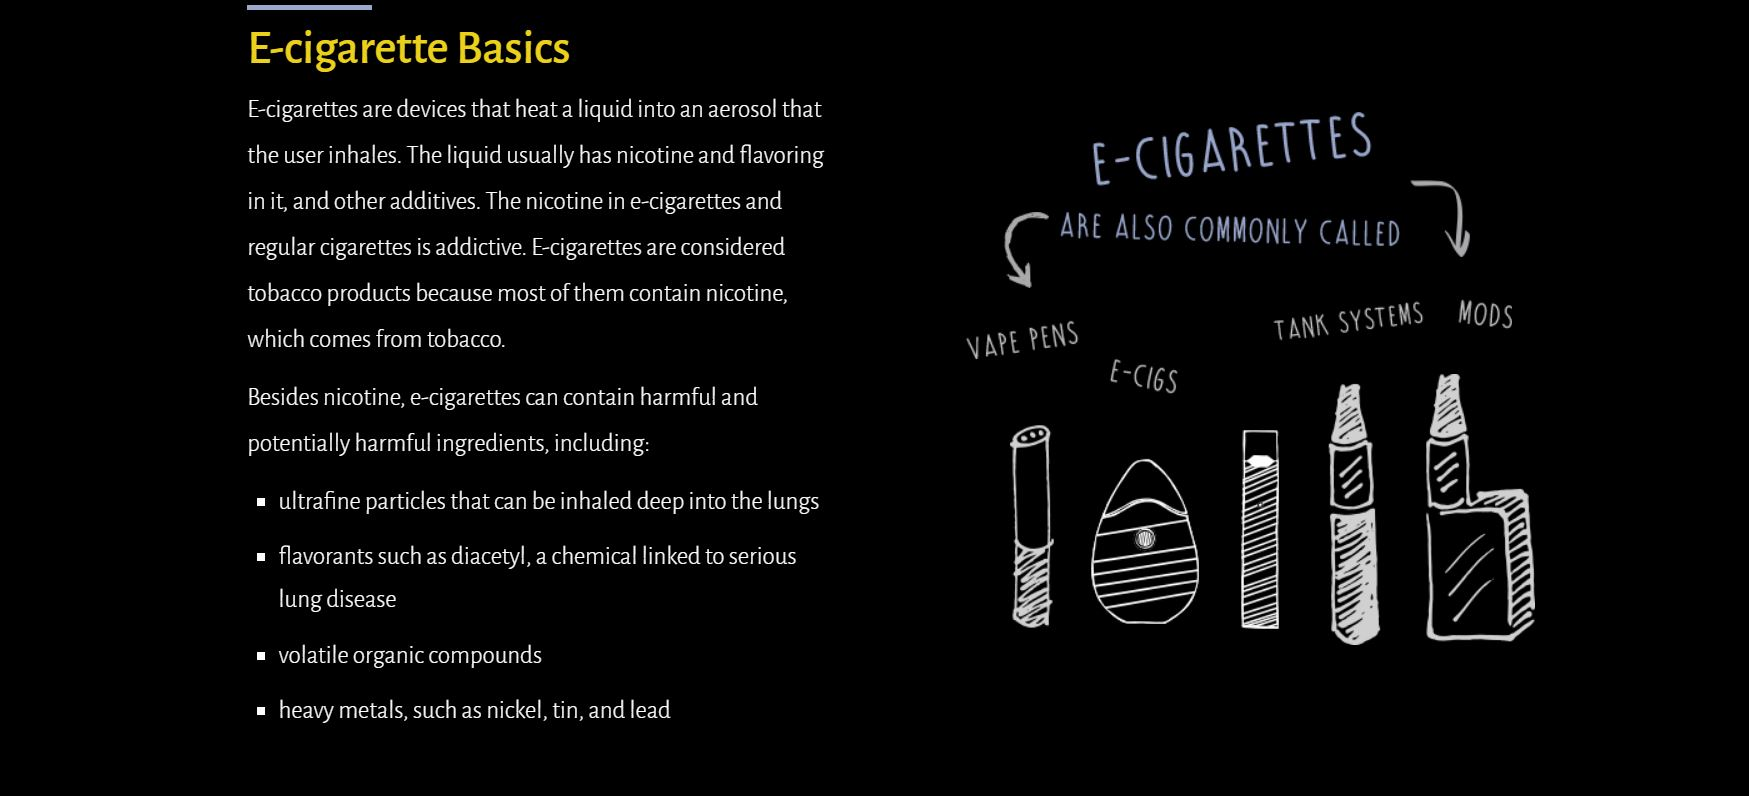 Vaping - Know The Risks